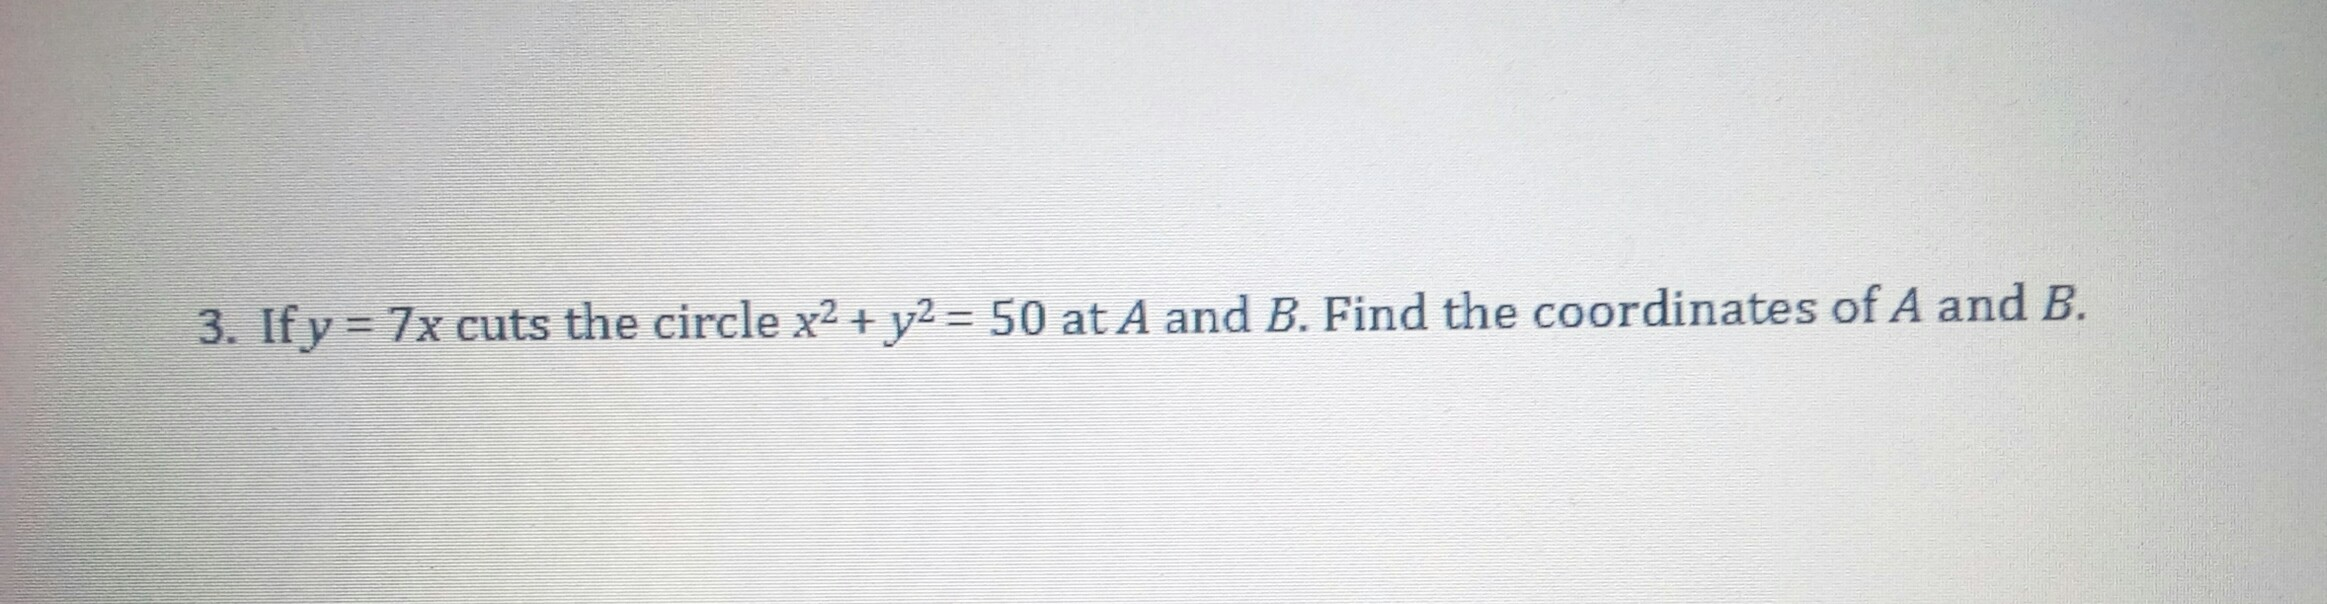 3. If y = 7x cuts the circle x² + y² = 50 at A and B. Find the coordinates of A and B. %3D %3D